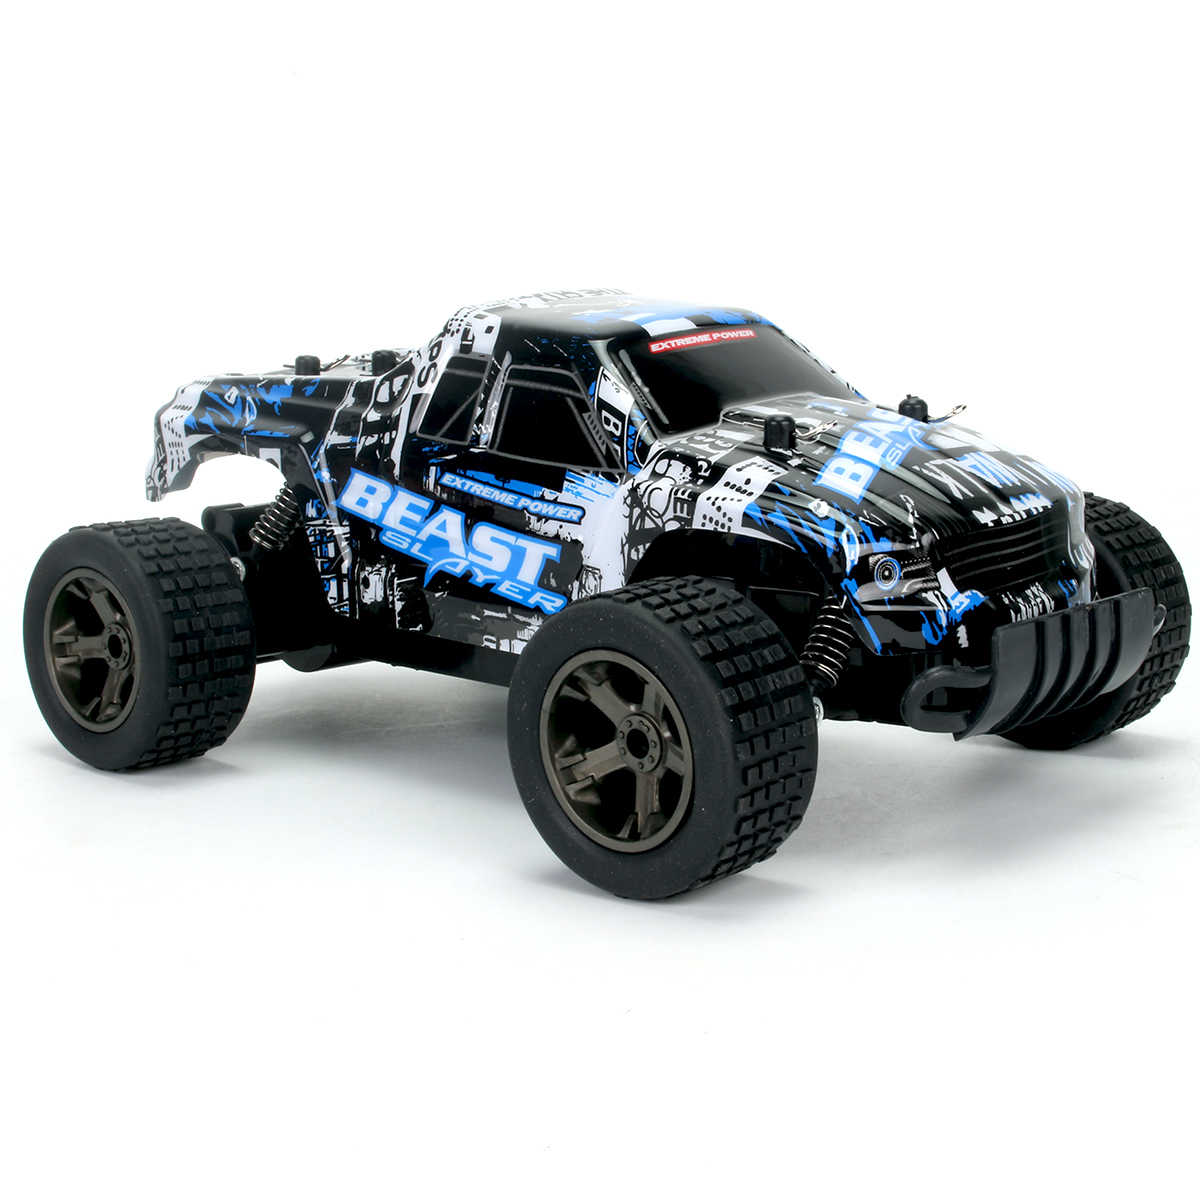 New RC Car 2811 2.4G 20KM/H High Speed Racing Car Climbing Remote Control Car RC Electric Car Off Road Truck 1:20 RC